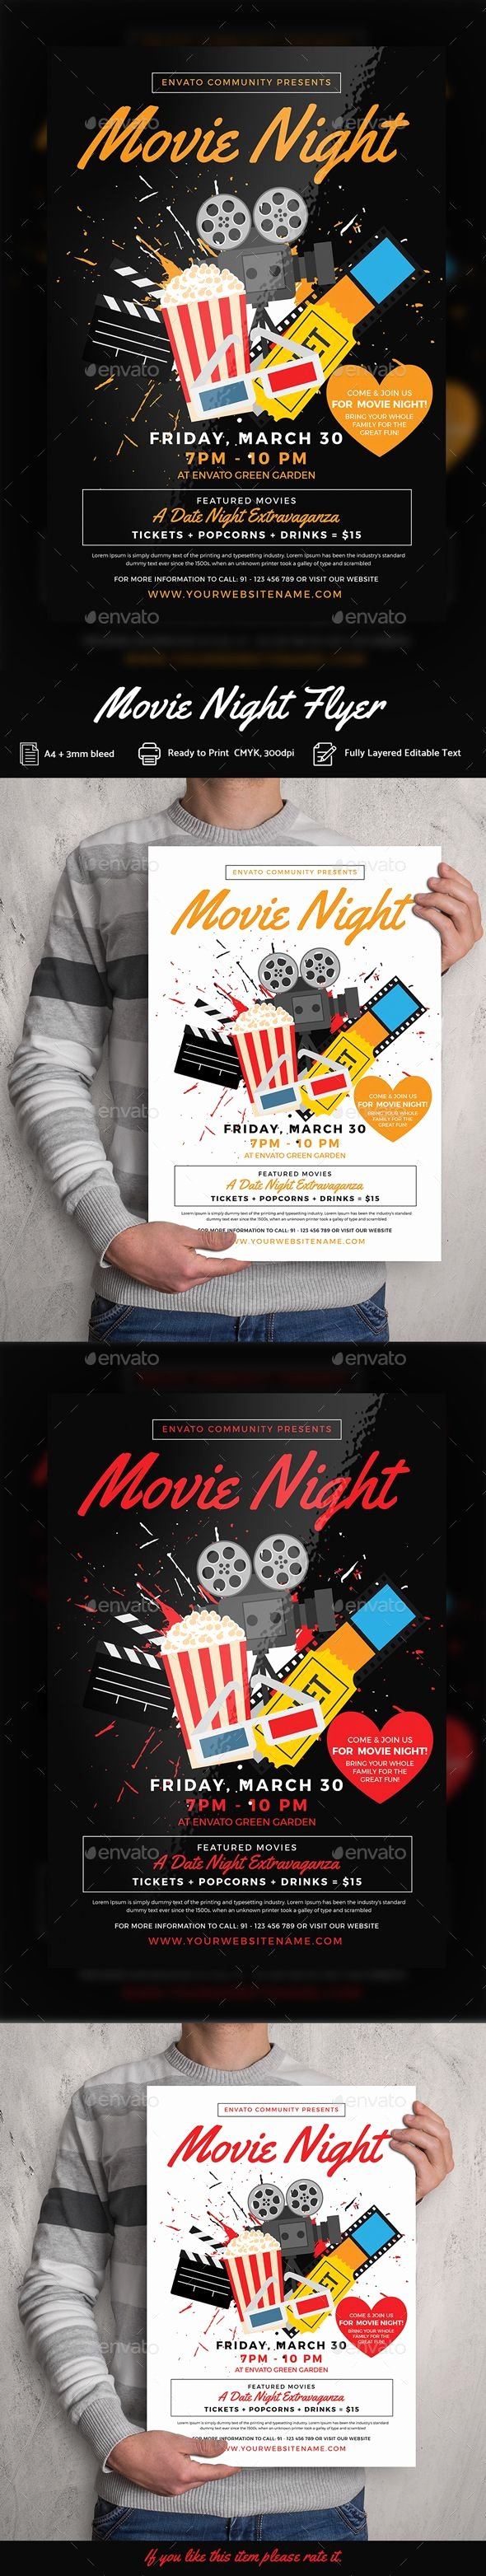 Movie Night Flyer Template Inspirational Movie Night Flyer Templates